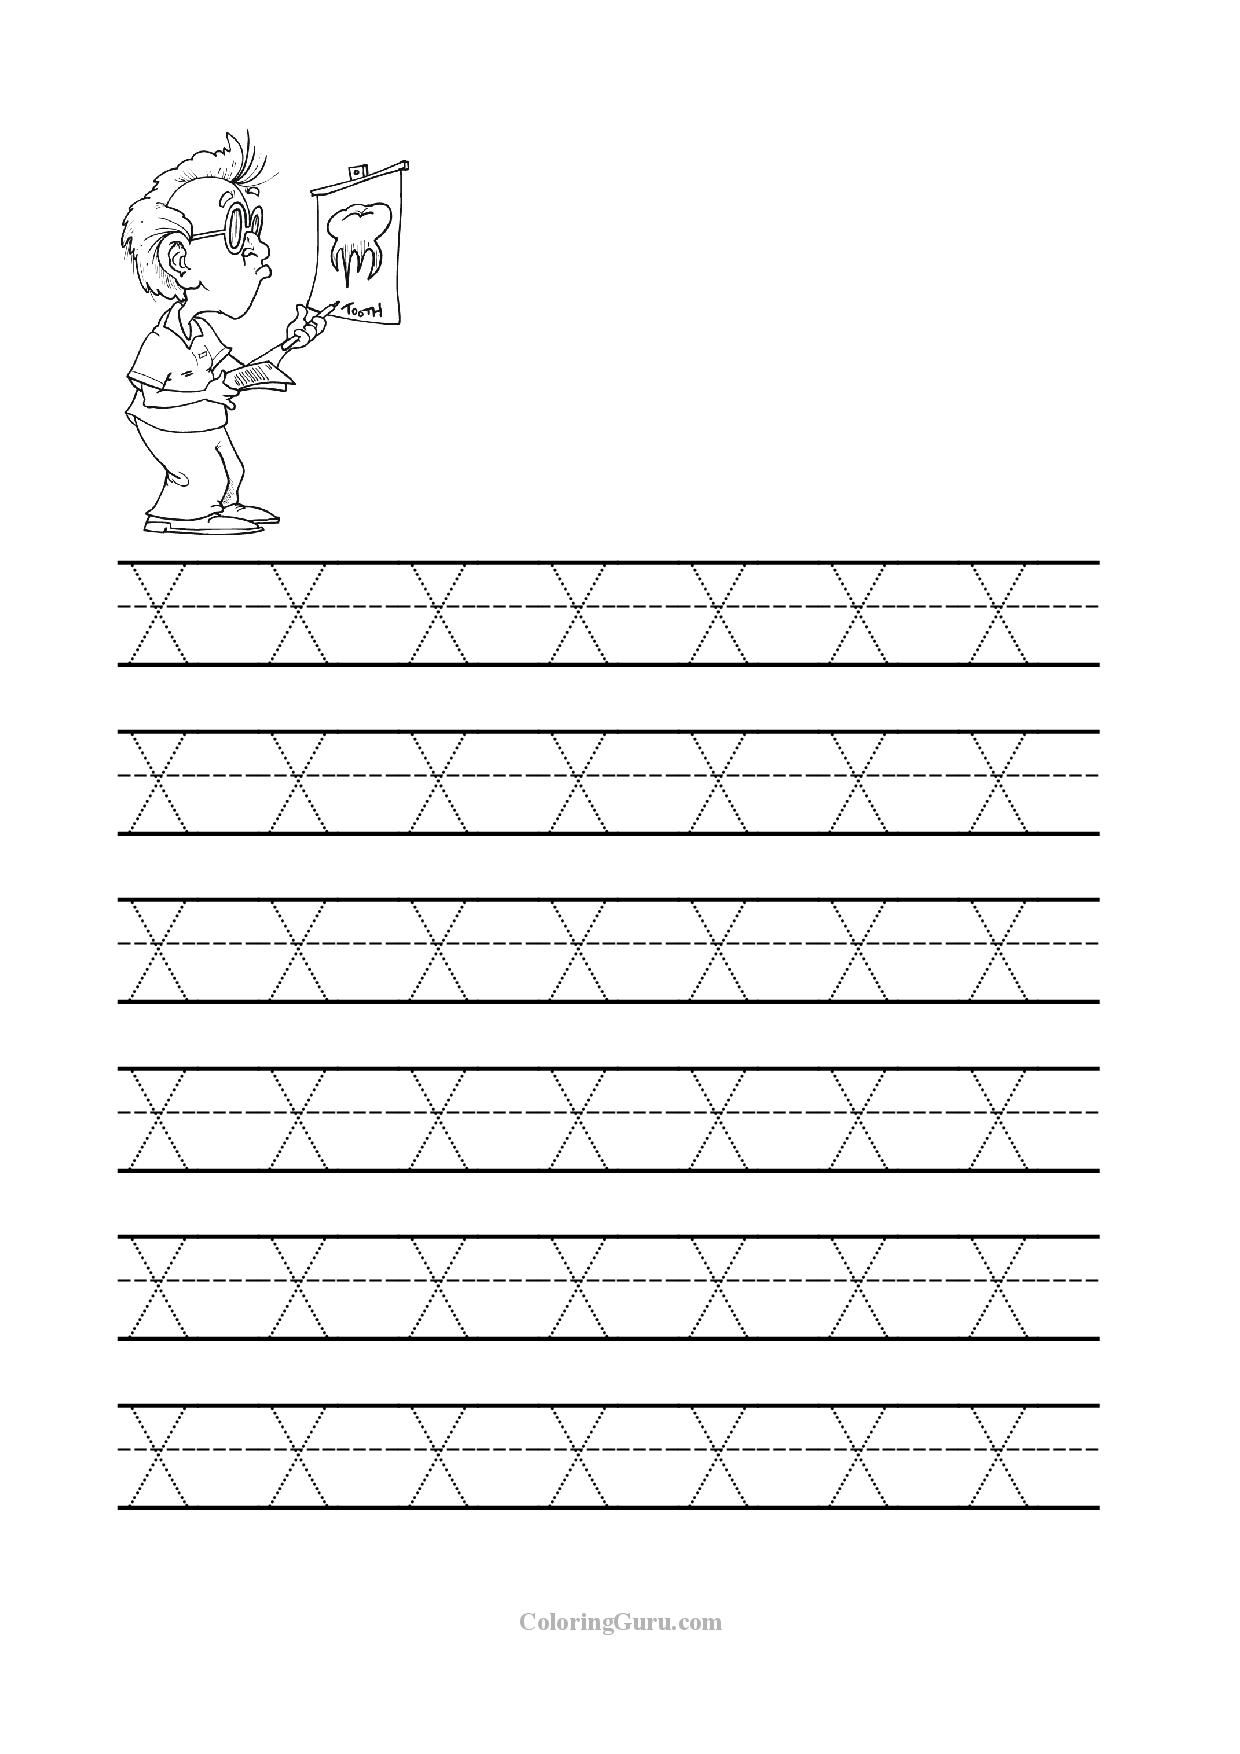 Worksheets Pre K Abc Worksheets free printable tracing letter x worksheets for preschool abc 123 pre k curriculum alph